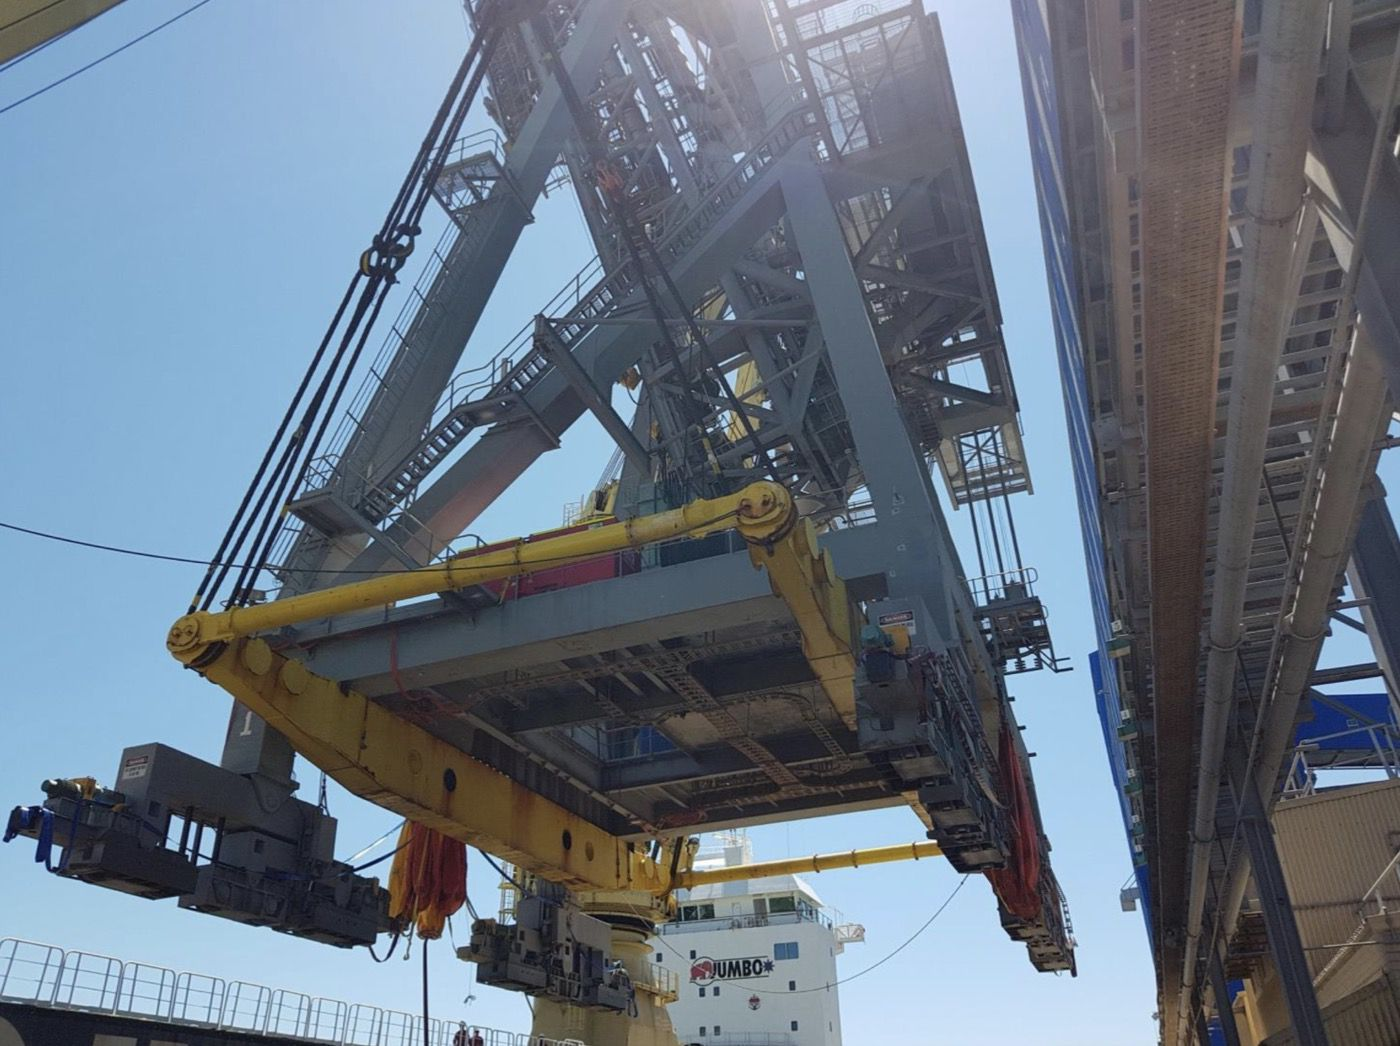 5-fremantle-port-crane-removal@2x